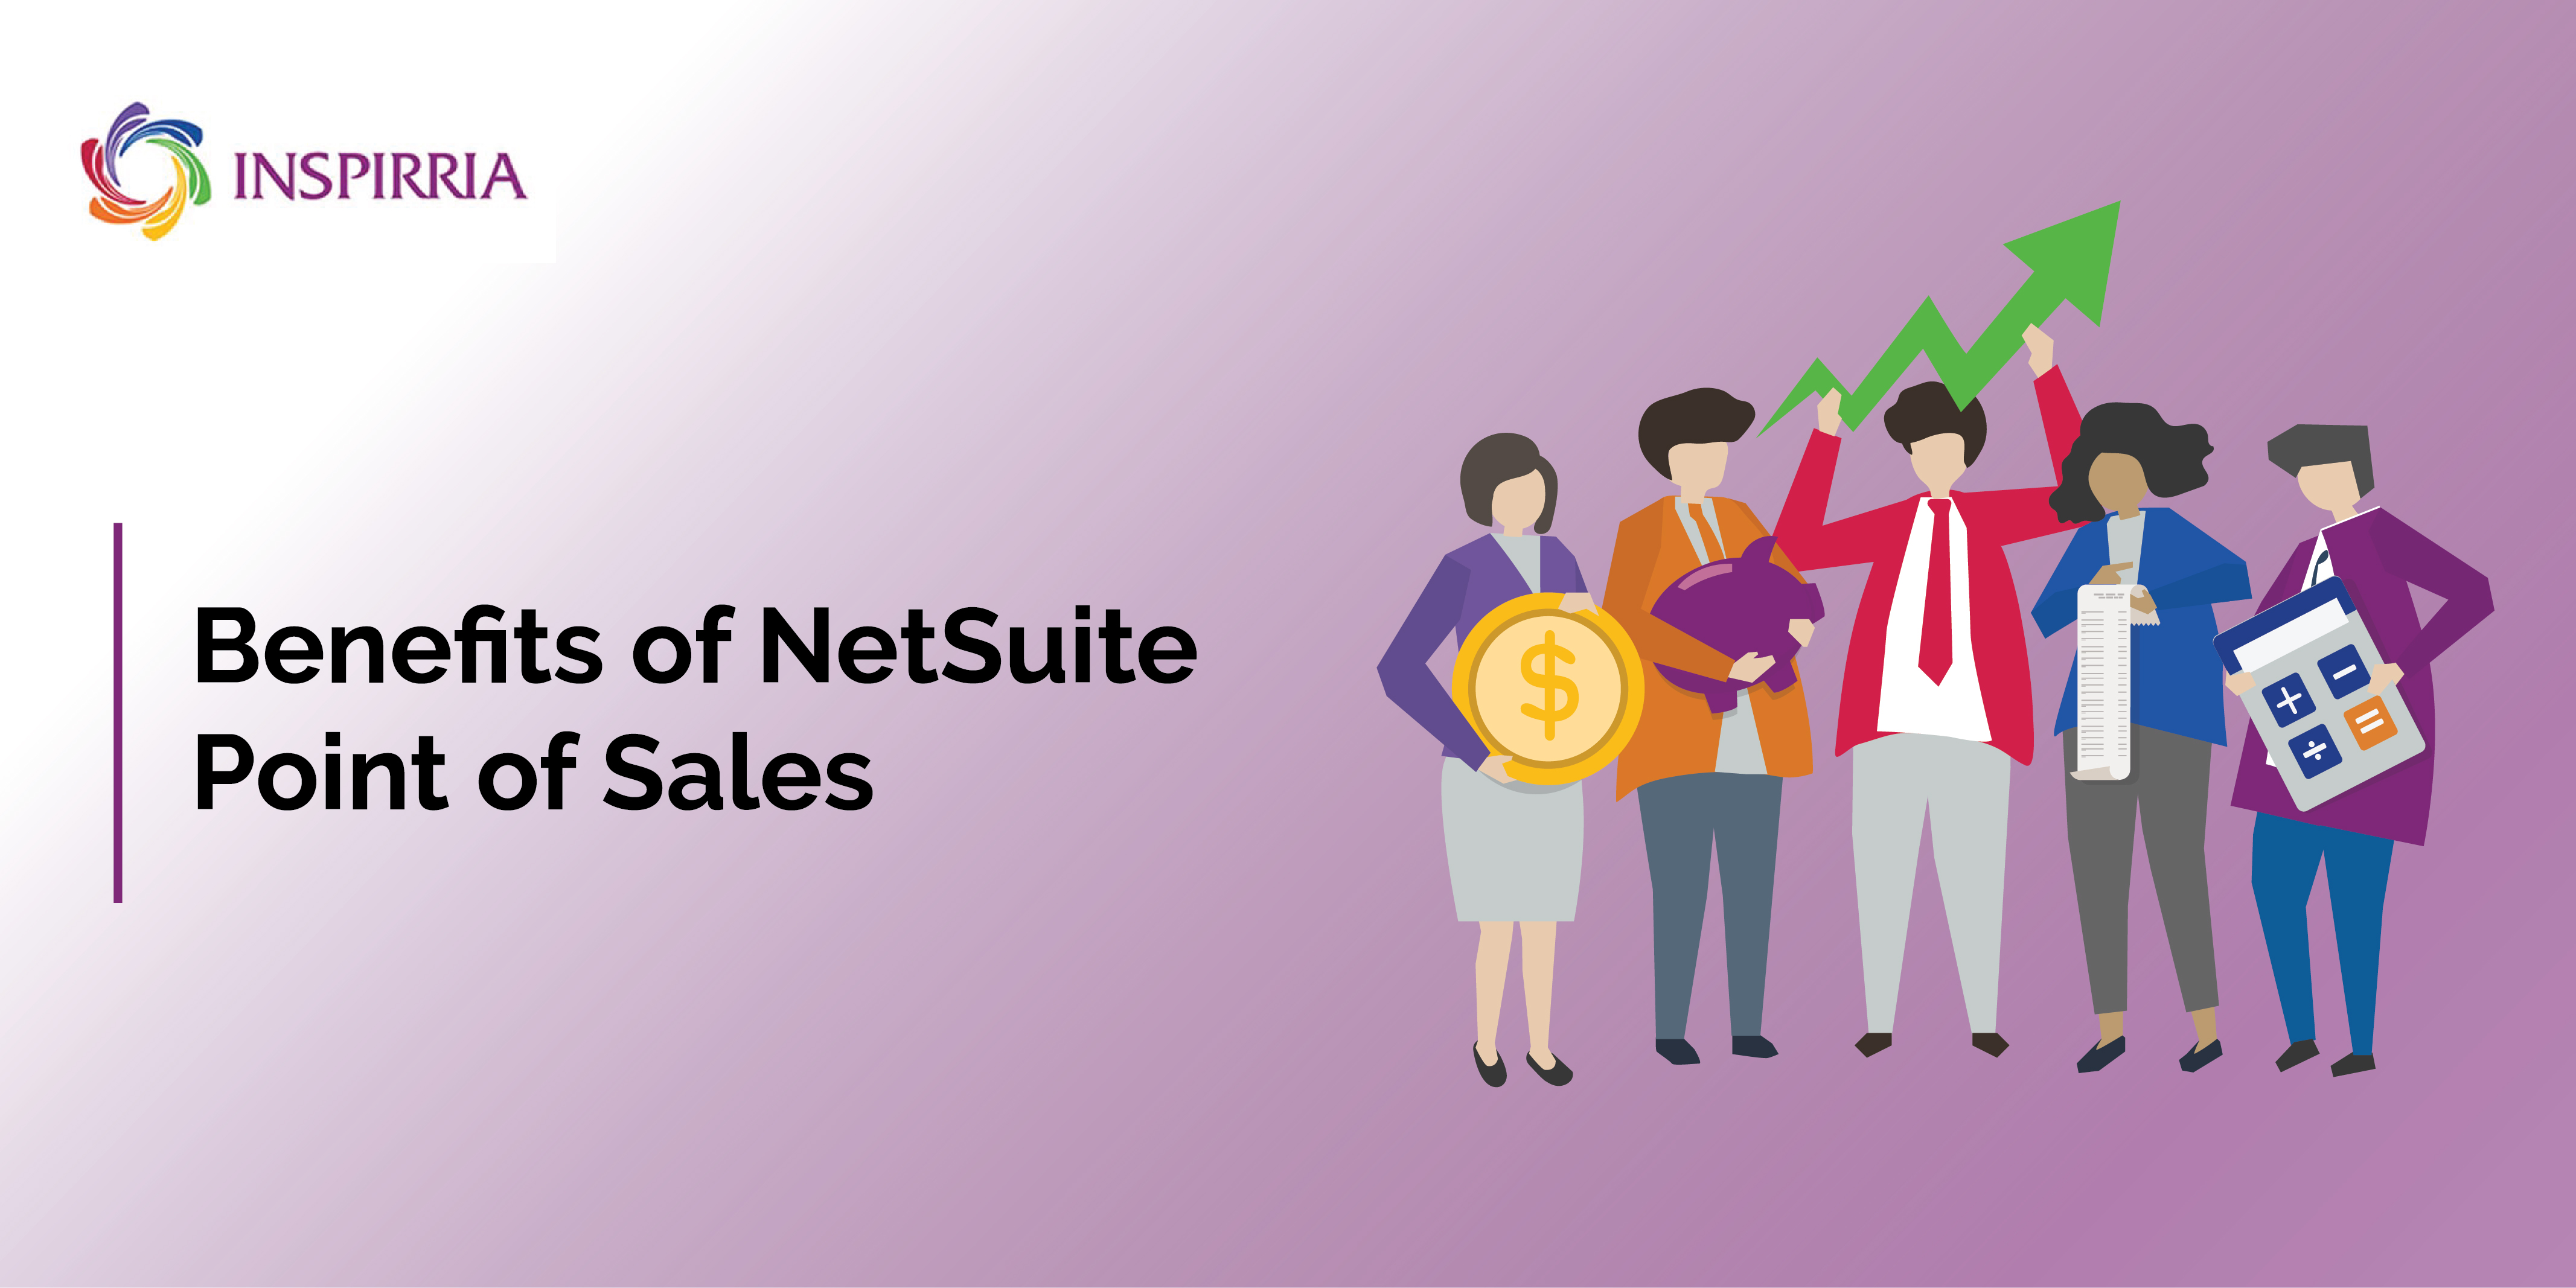 Benefits of NetSuite Point of Sales